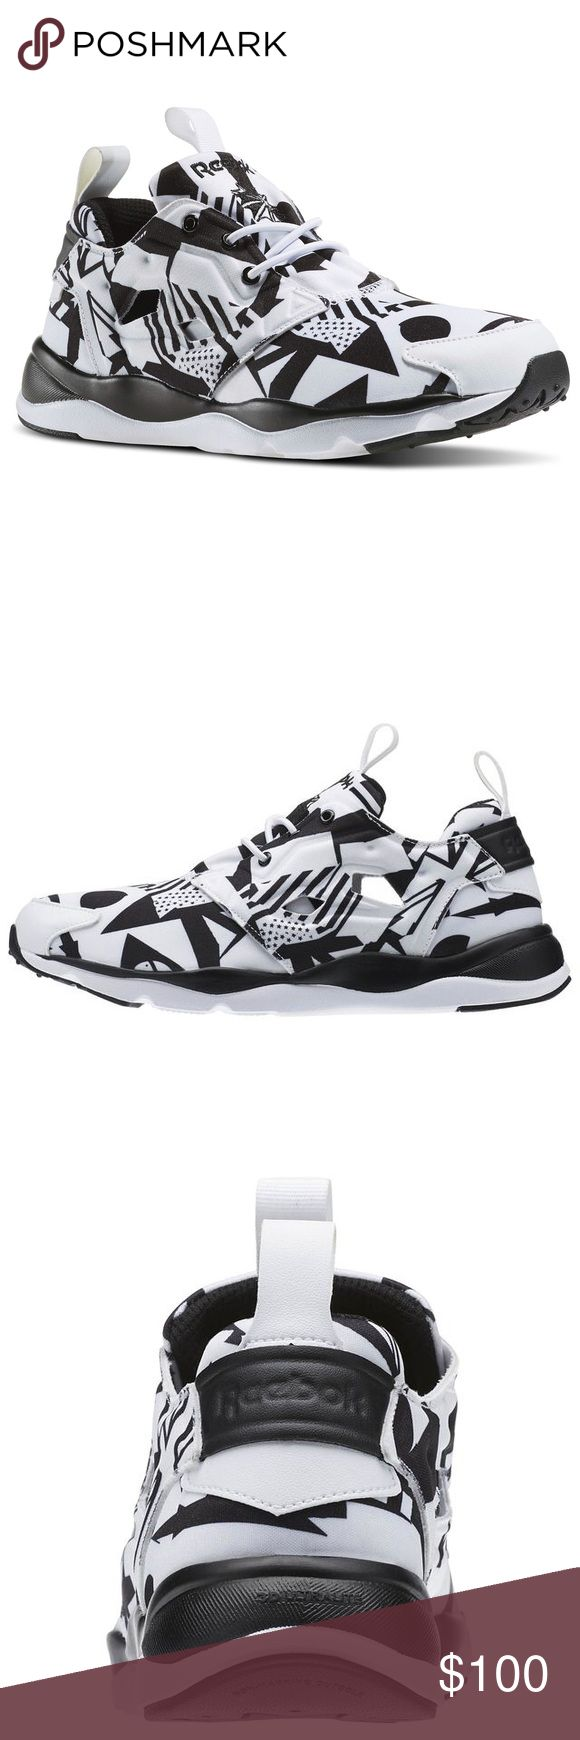 Women's Reebok Furylite Graphic NWOT Color Olympic-white/ black - Size 5 / The low-cut design gives you maximum mobility, while the bold graphics will have heads turning as you zoom past. Synthetic upper for lightweight comfort Low-cut design for freedom of motion and quicker transitions 3D Ultralite midsole foam provides lightweight, long-lasting cushioning Slip-on construction for easy on/off wear High abrasion rubber in key areas for durability and traction Removable sockliner for added…